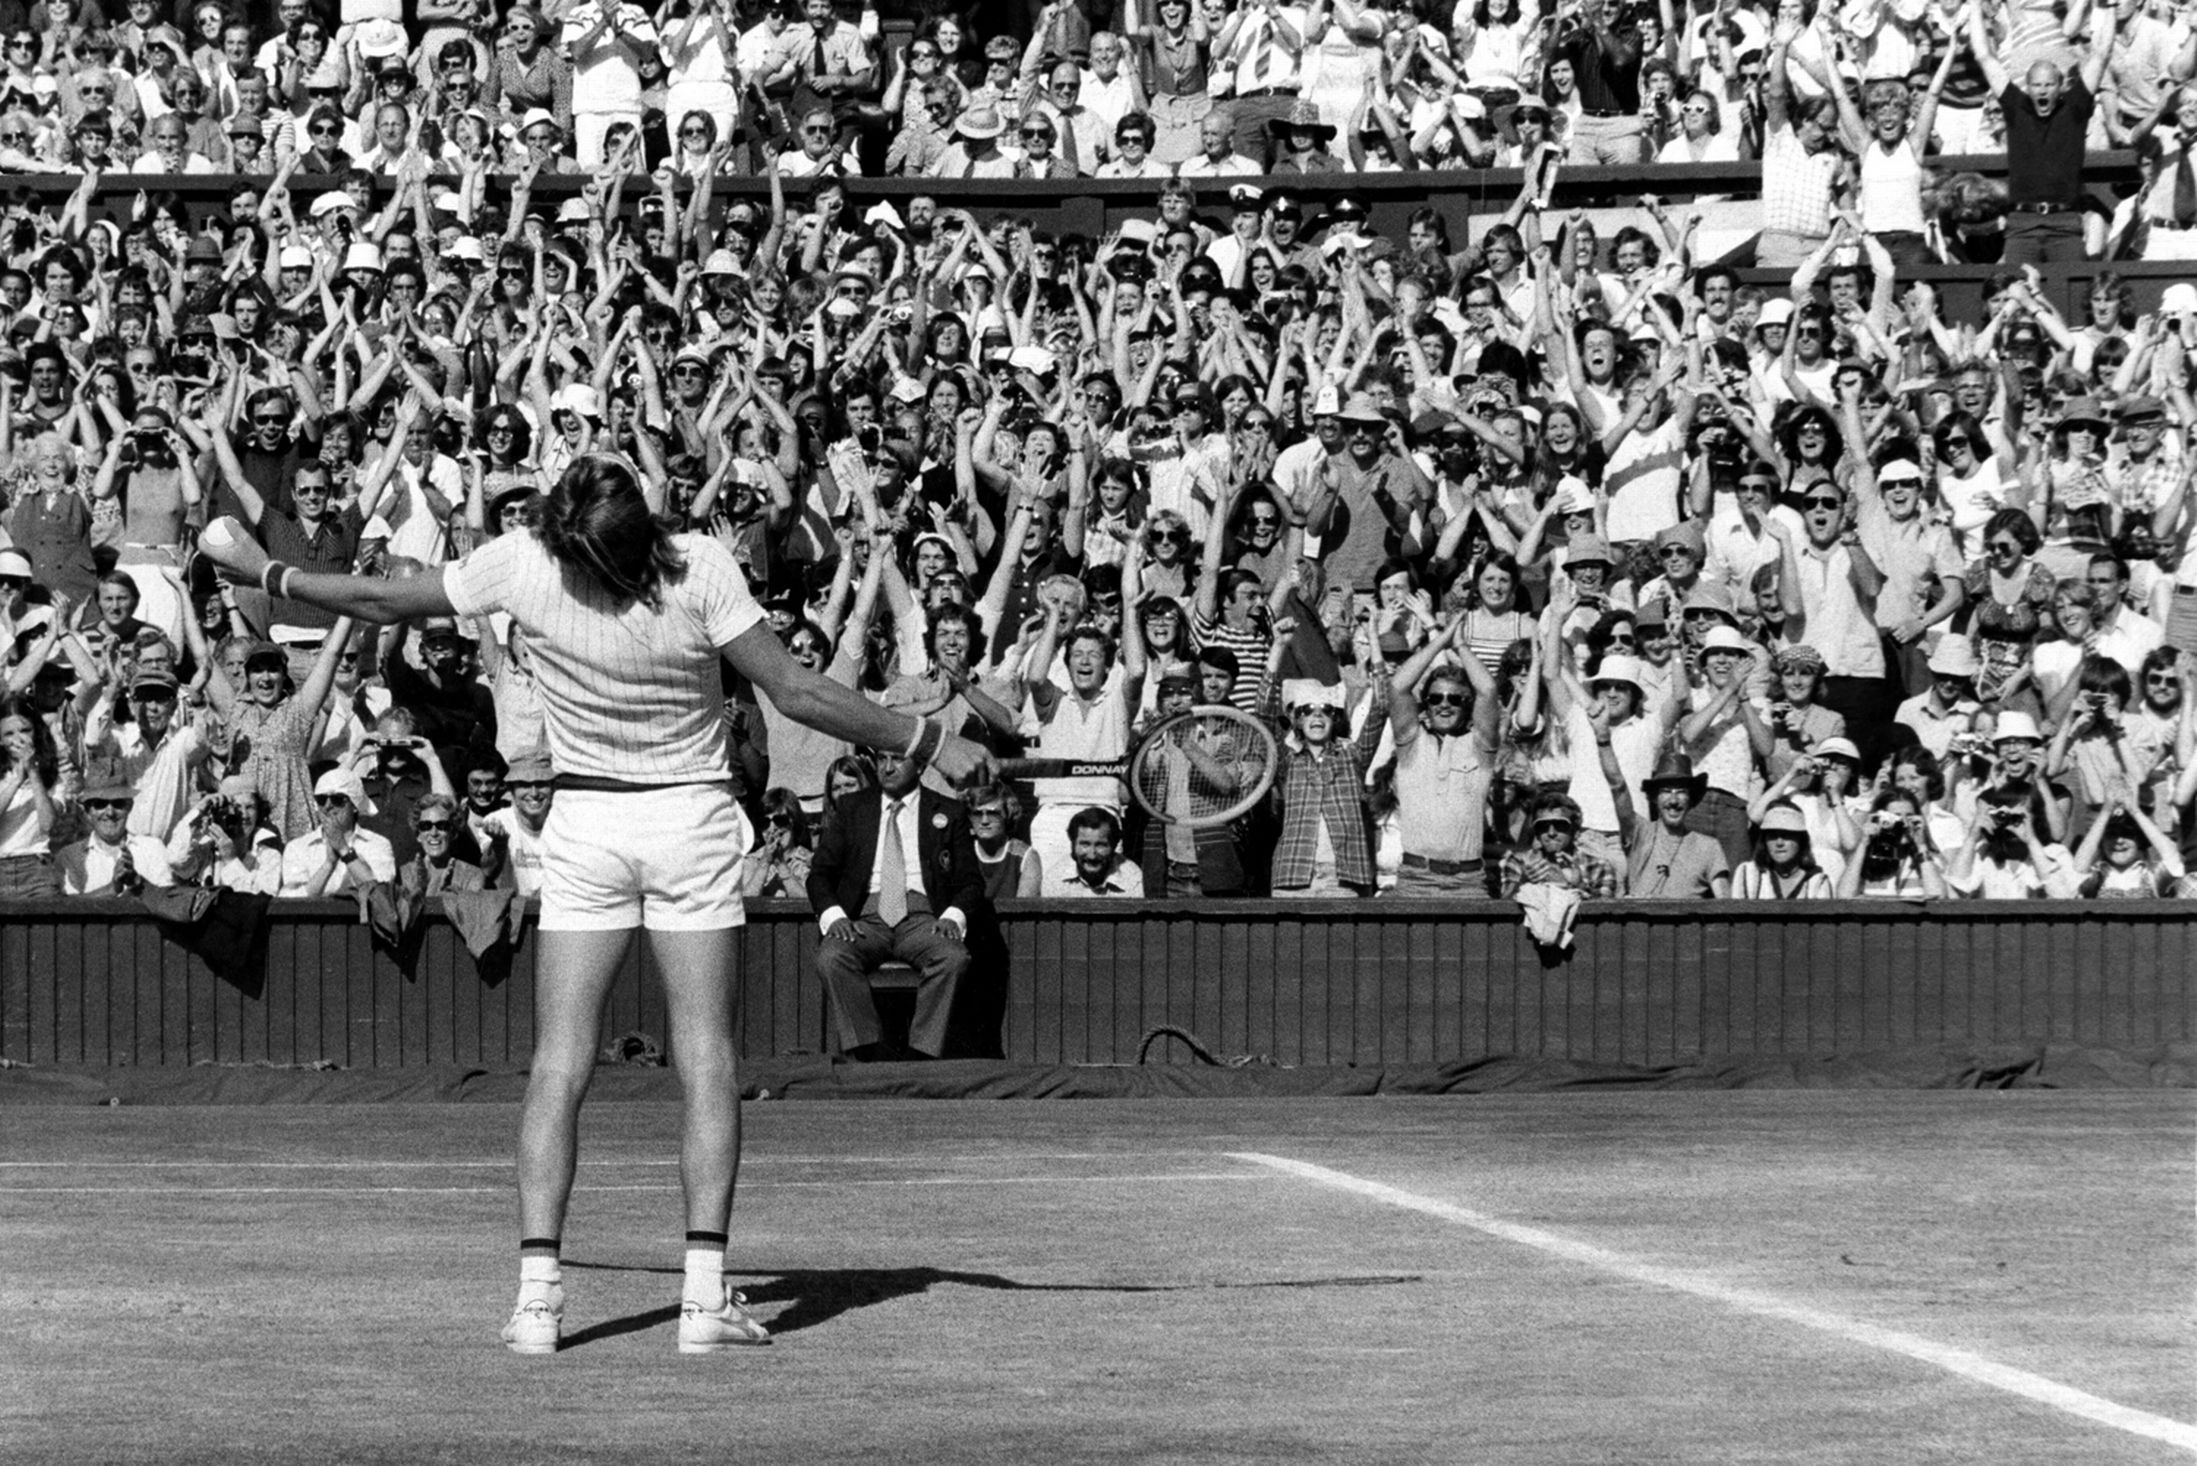 Most Iconic Sports Photos Björn Borg - Final of the 1977 Wimbledon Championships